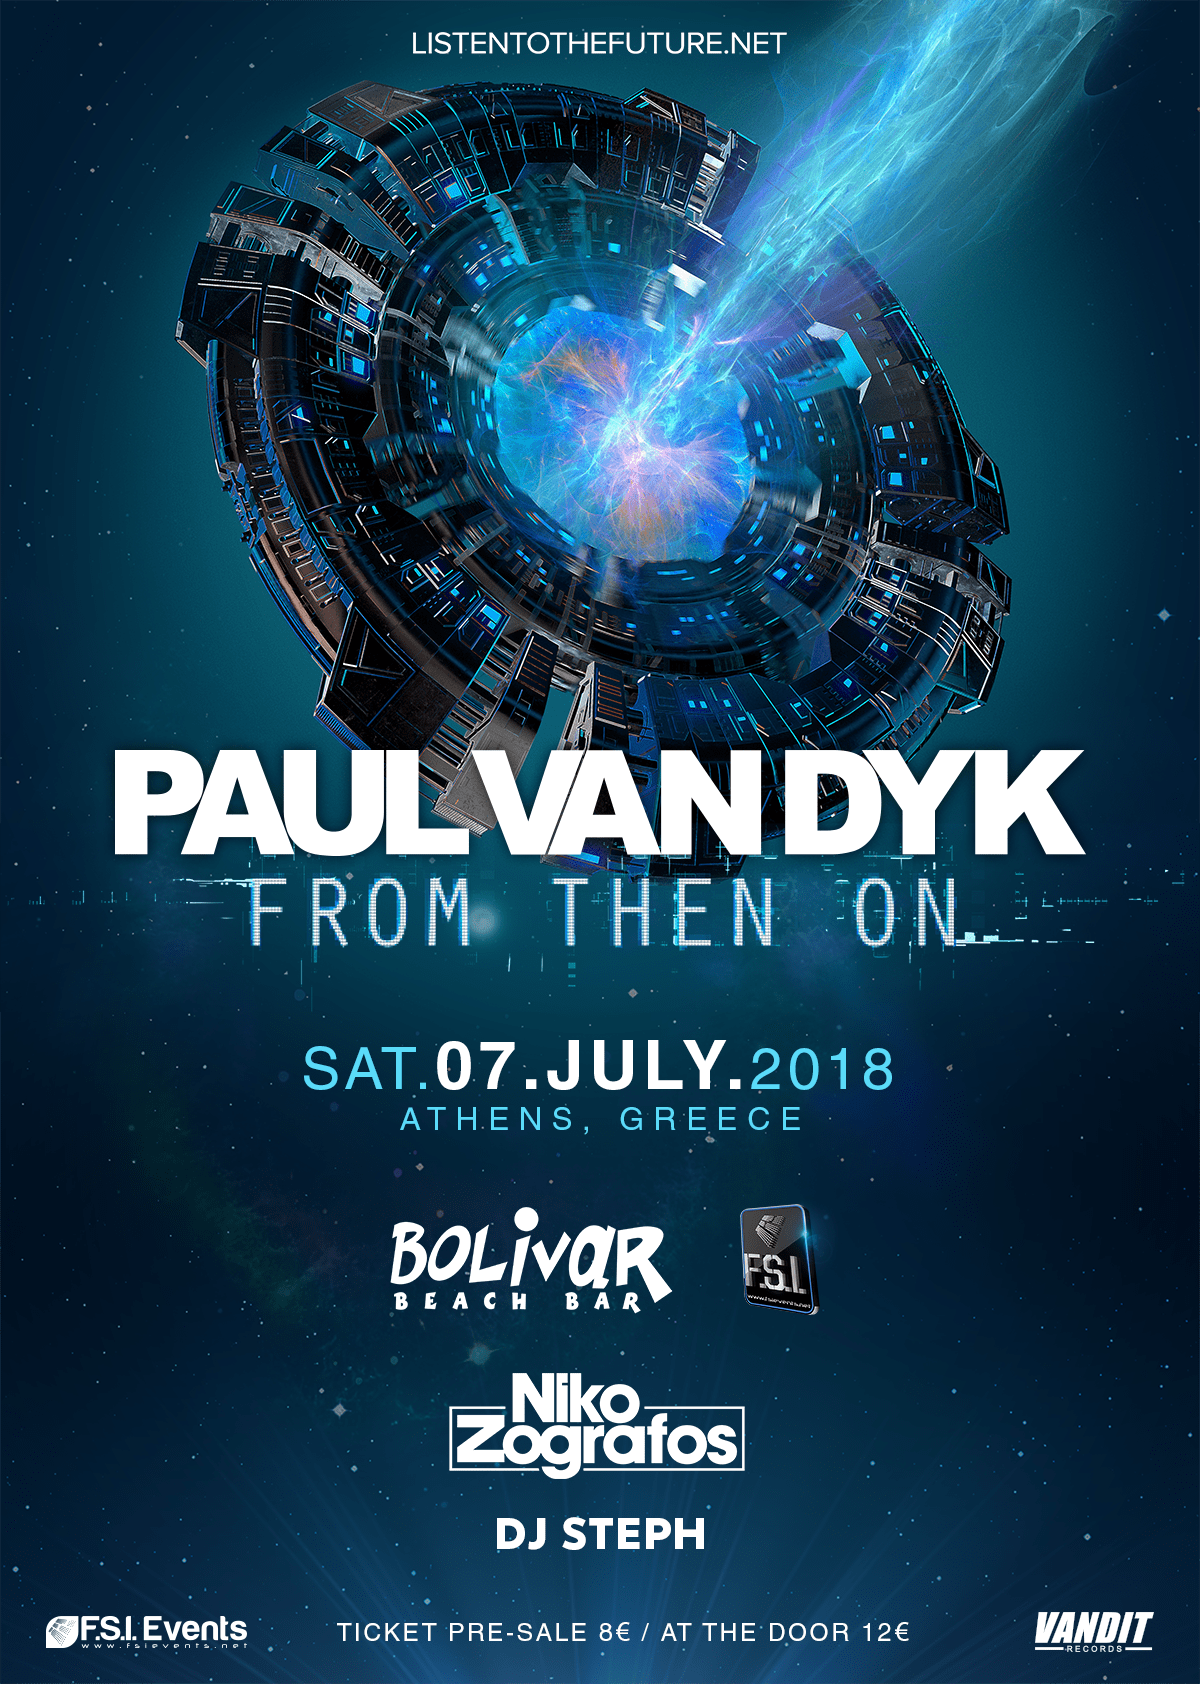 Niko Zografos joins Paul Van Dyk for his debut performance in Greece at Bolivar Beach Bar